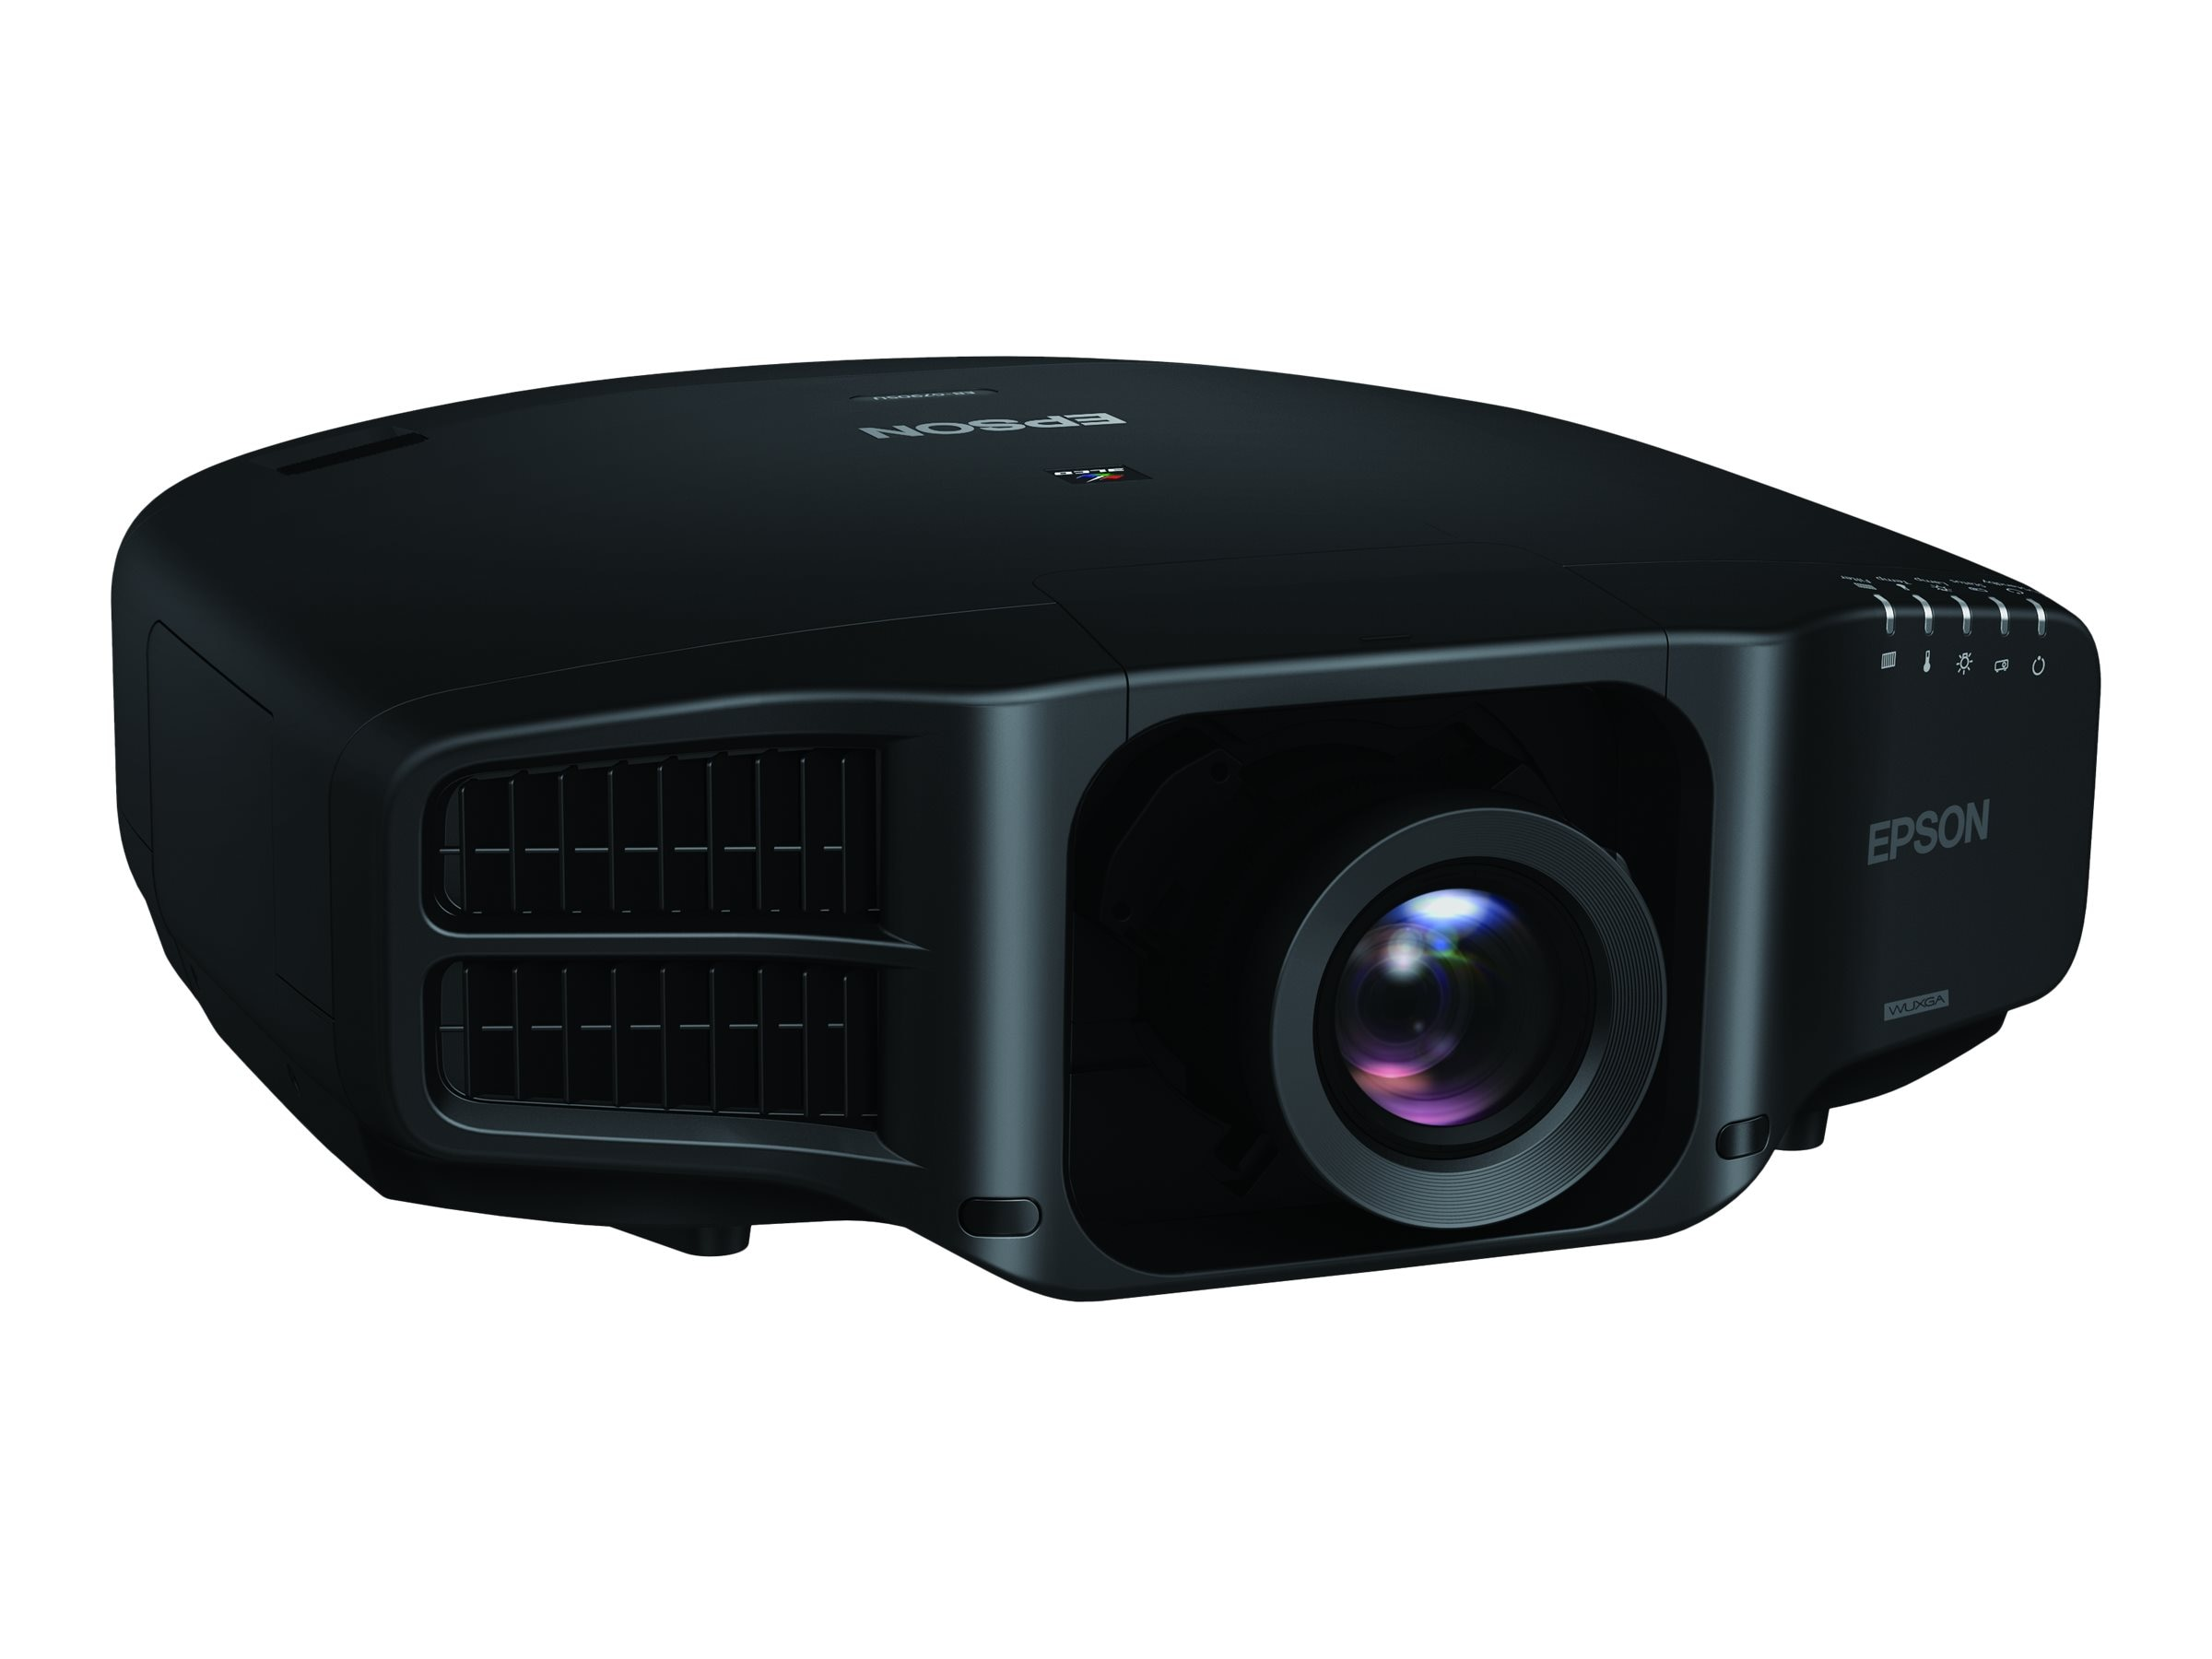 Epson Pro G7905U WUXGA 3LCD Projector with Standard Lens, 7000 Lumens, Black, V11H749120